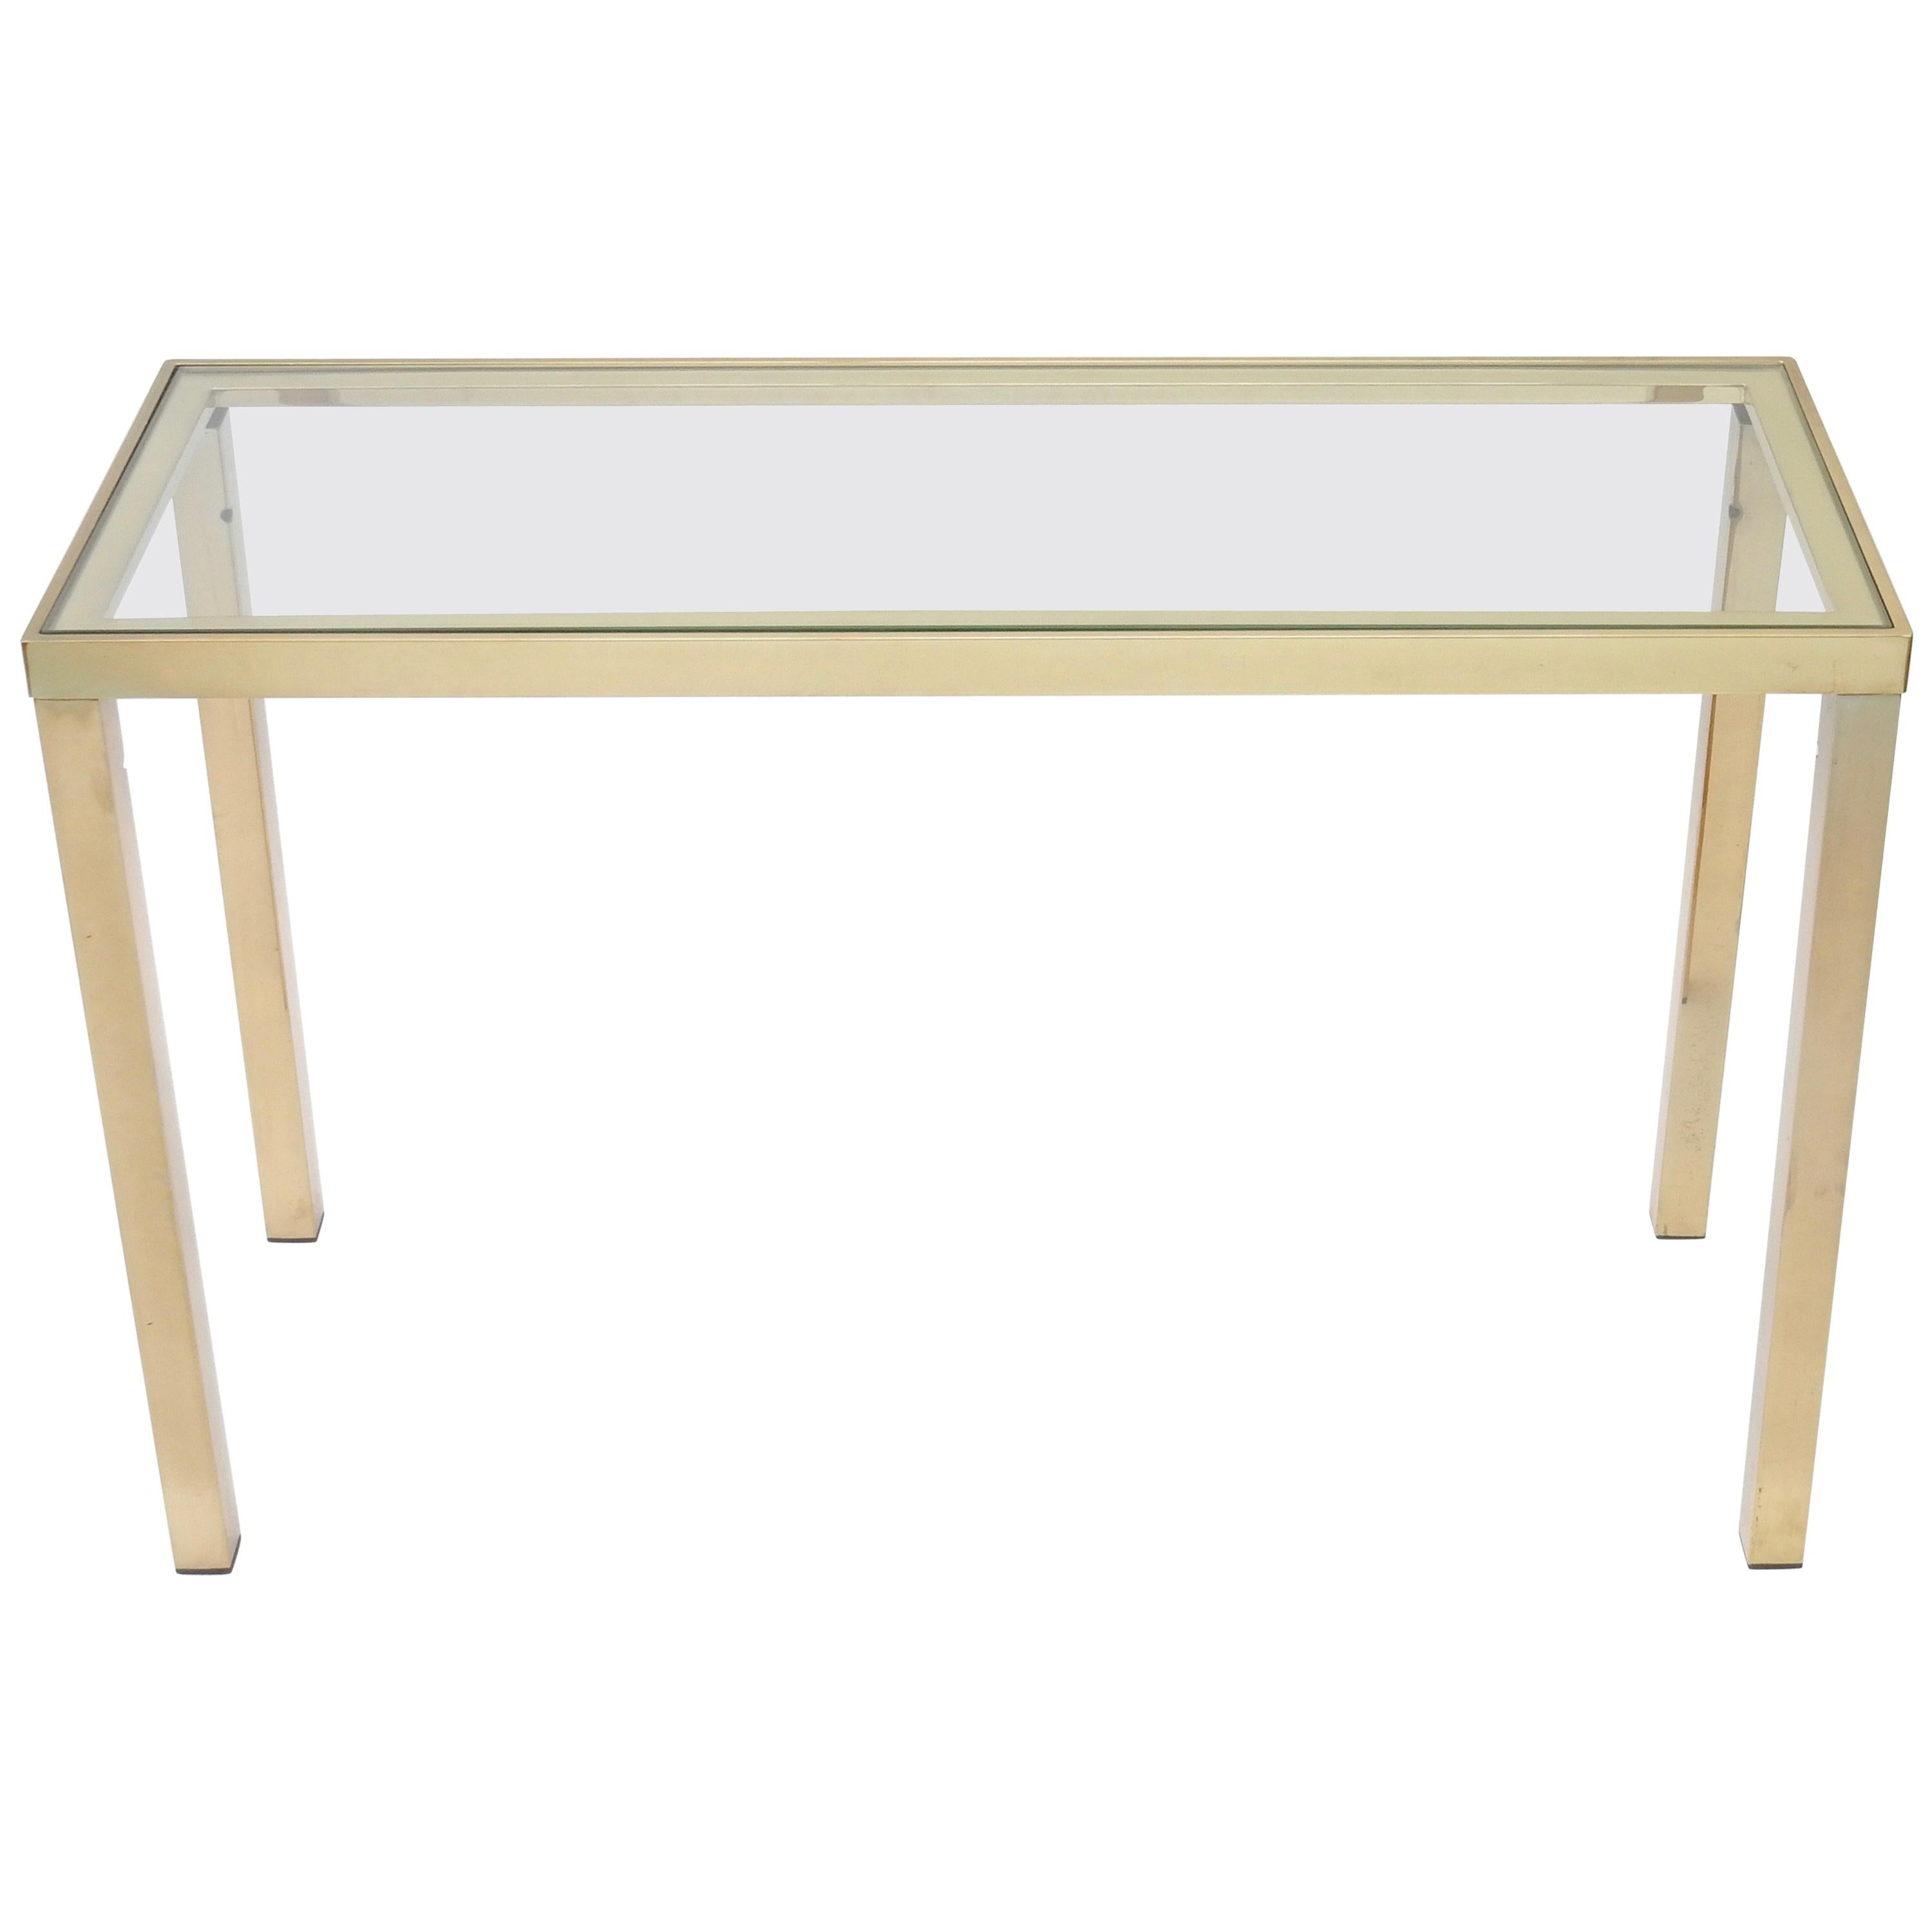 French Brass Console Table with Glass Top, 1970s